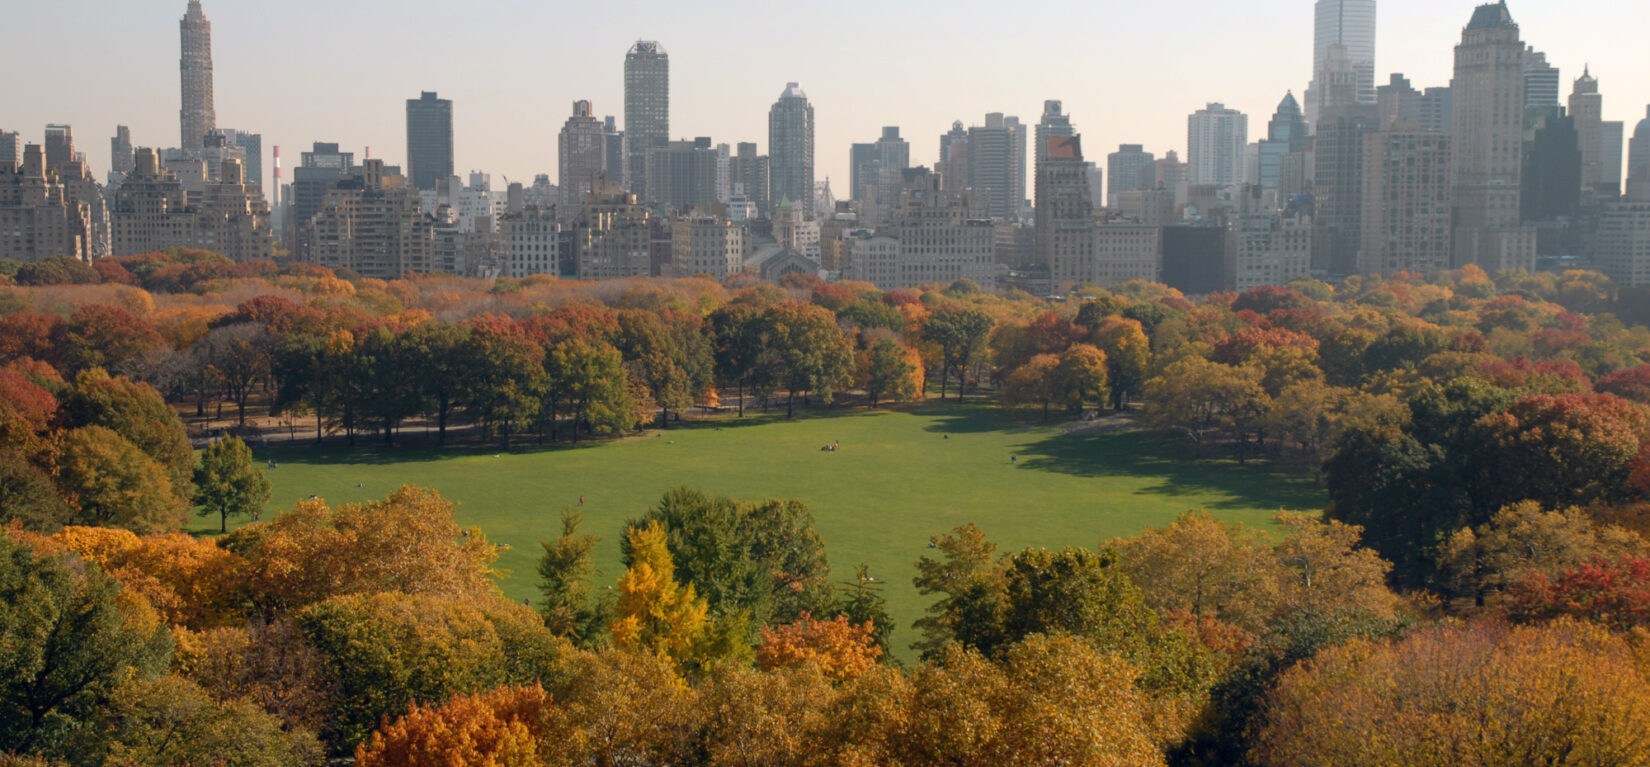 An aerial view of the Sheep Meadow in early autumn